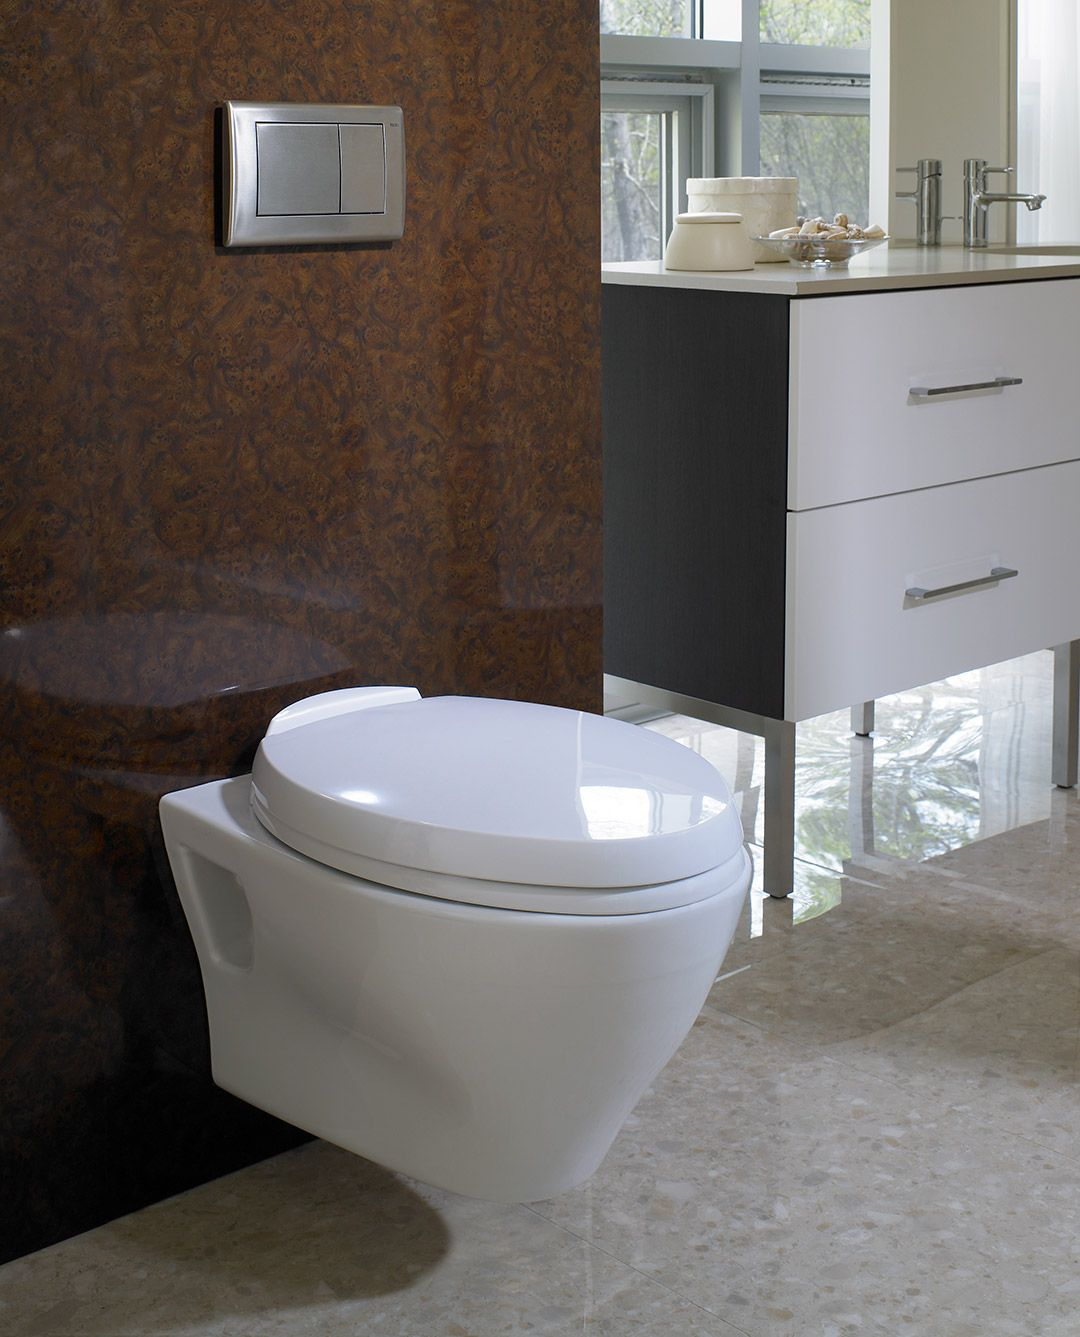 Aquia wall hung dual flush toilet 1 6 gpf 0 9 gpf for Flush with the wall